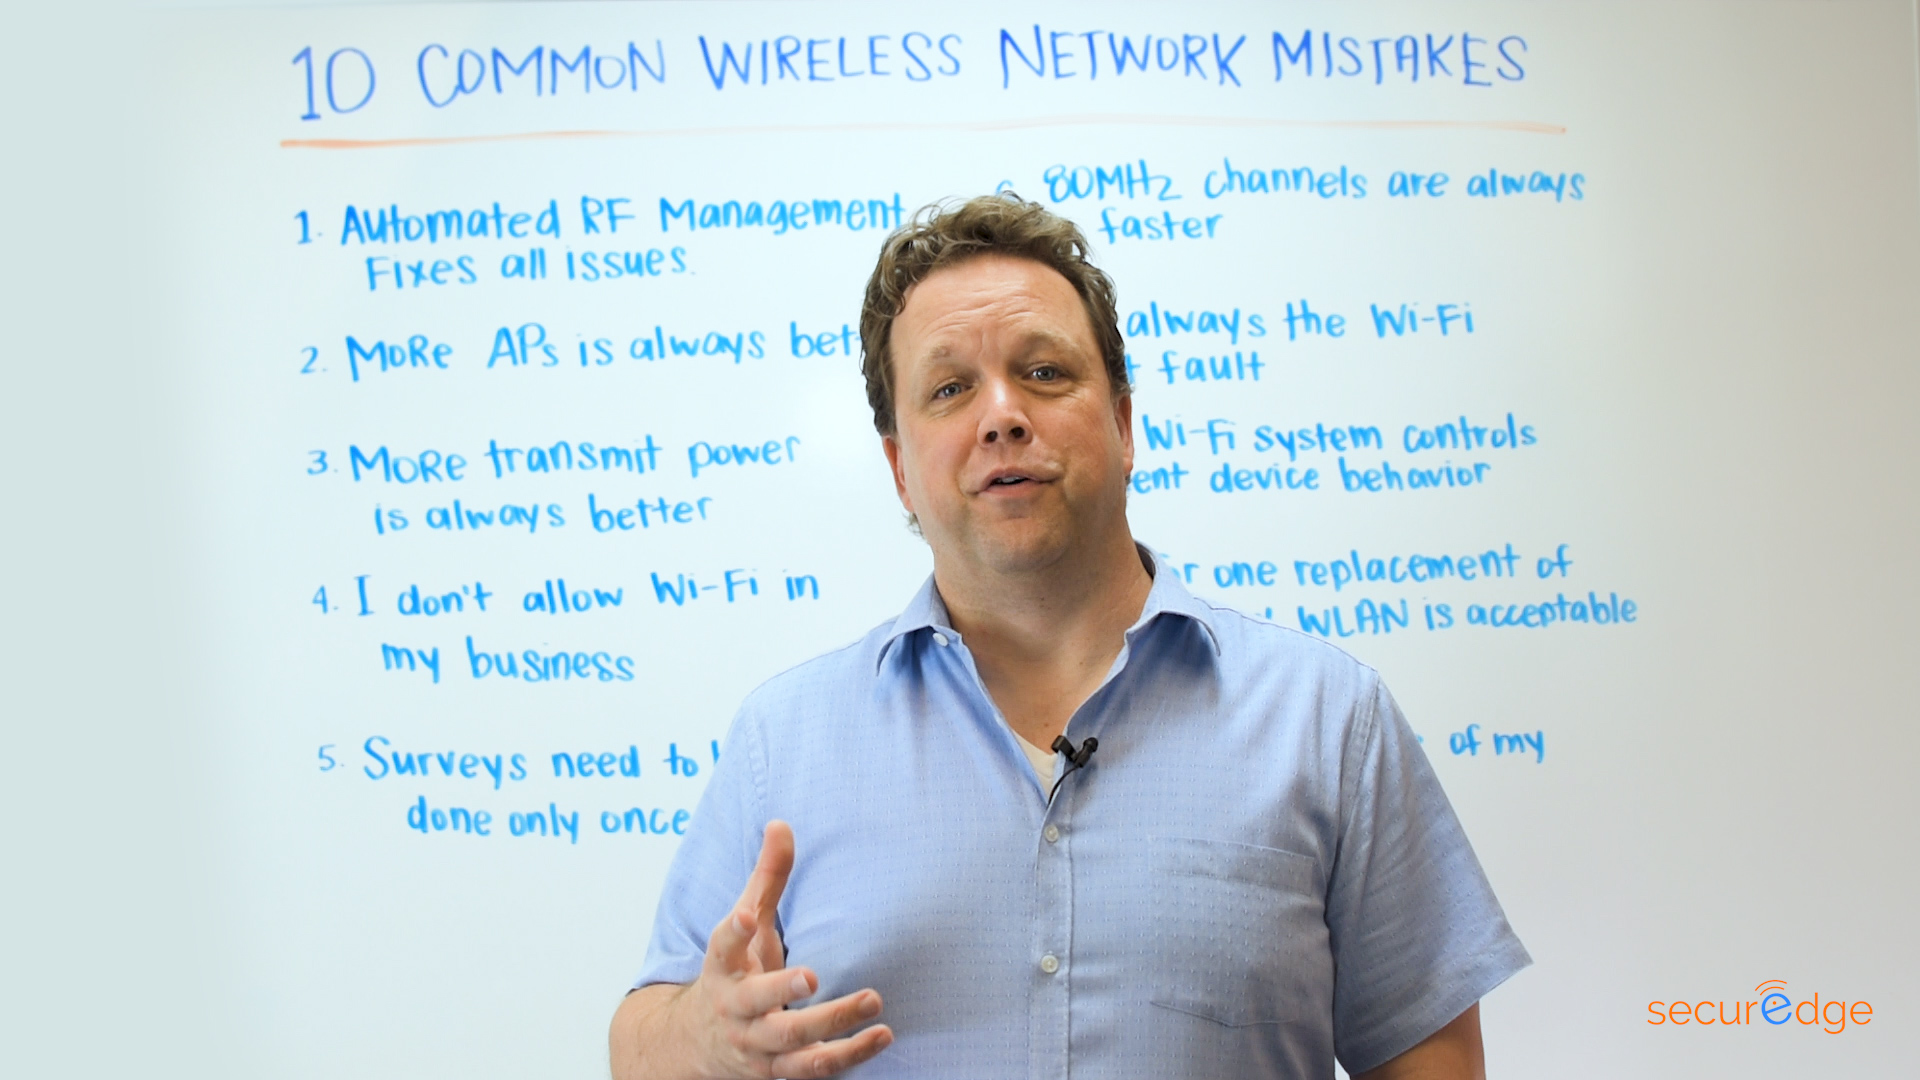 10 Common Wireless Network Mistakes